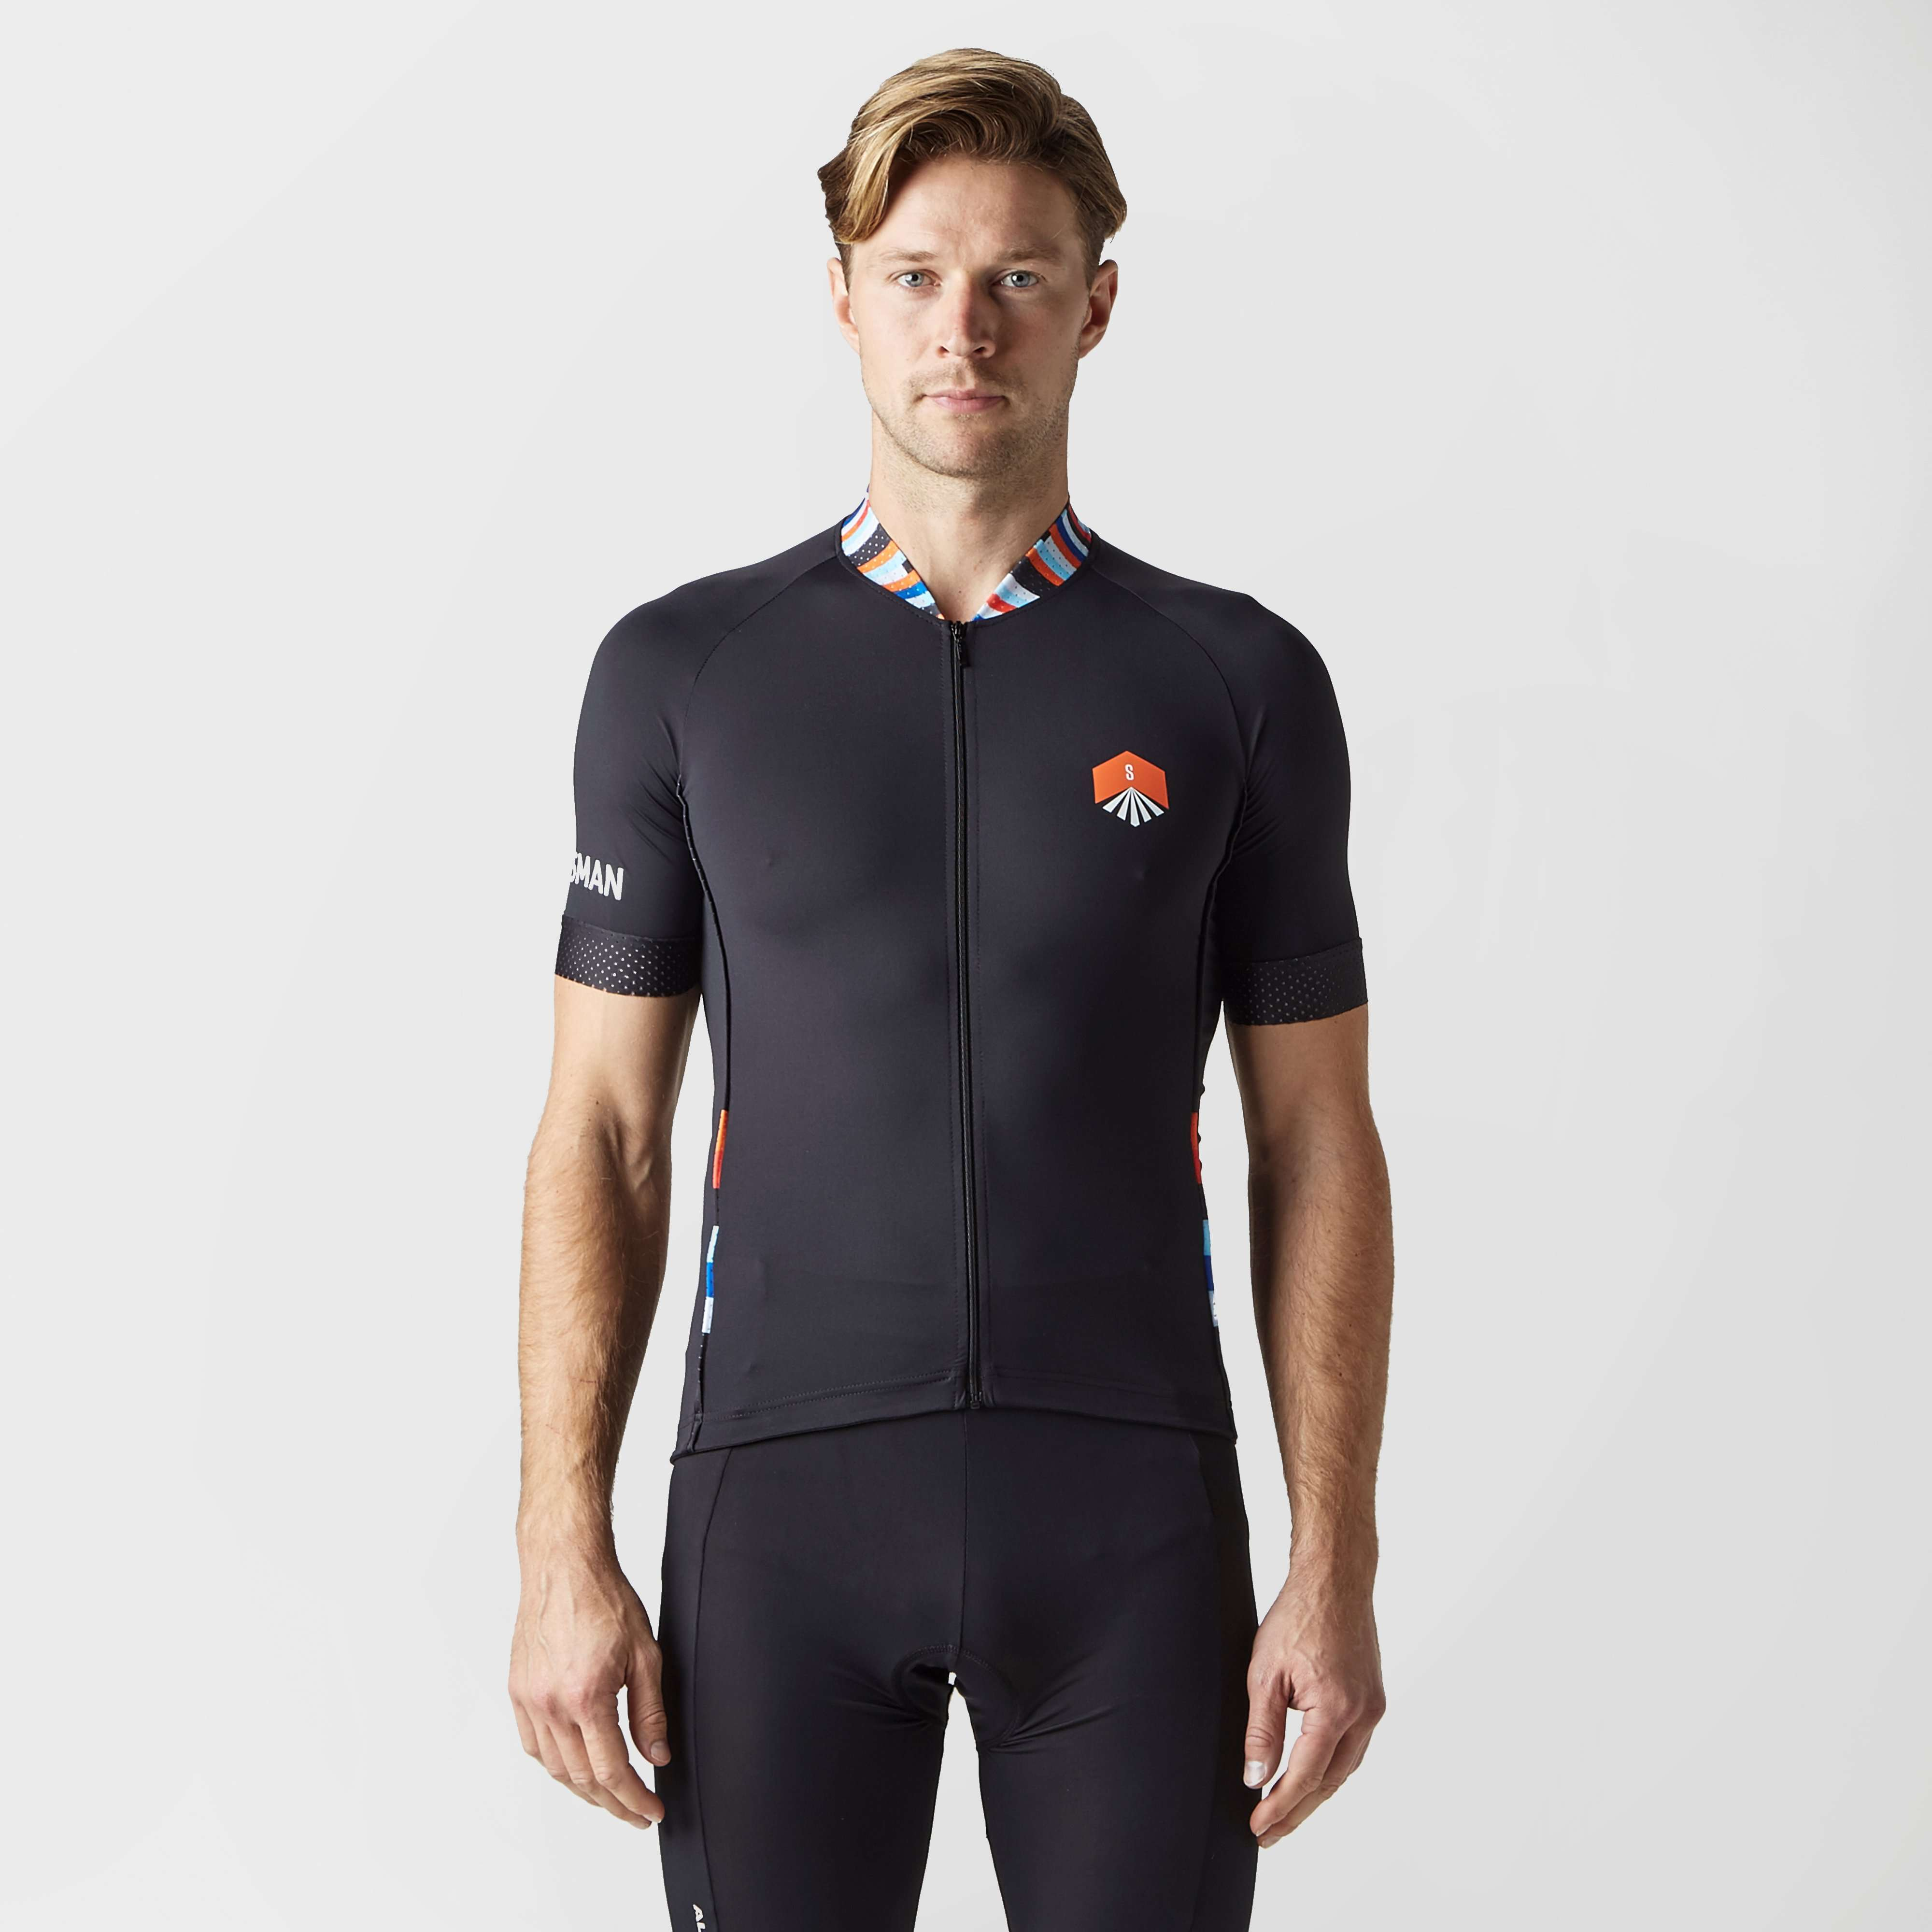 SPOKESMAN Men's Chronicle Cycling Jersey